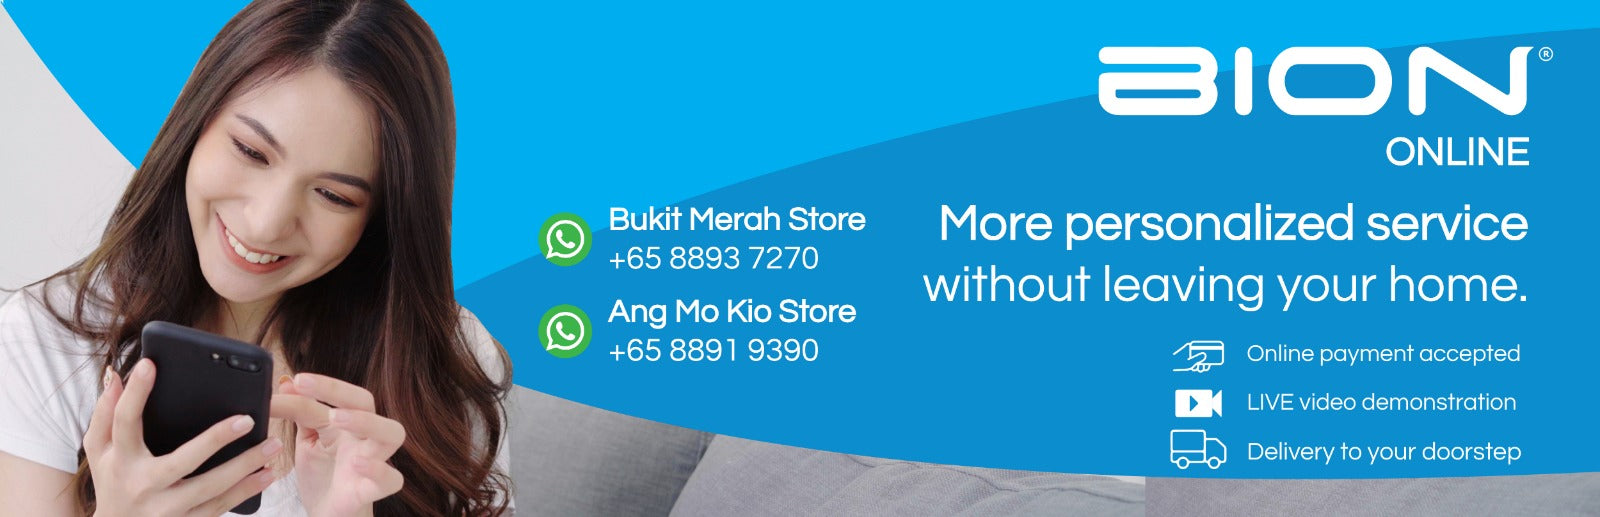 BION Retail Store going online